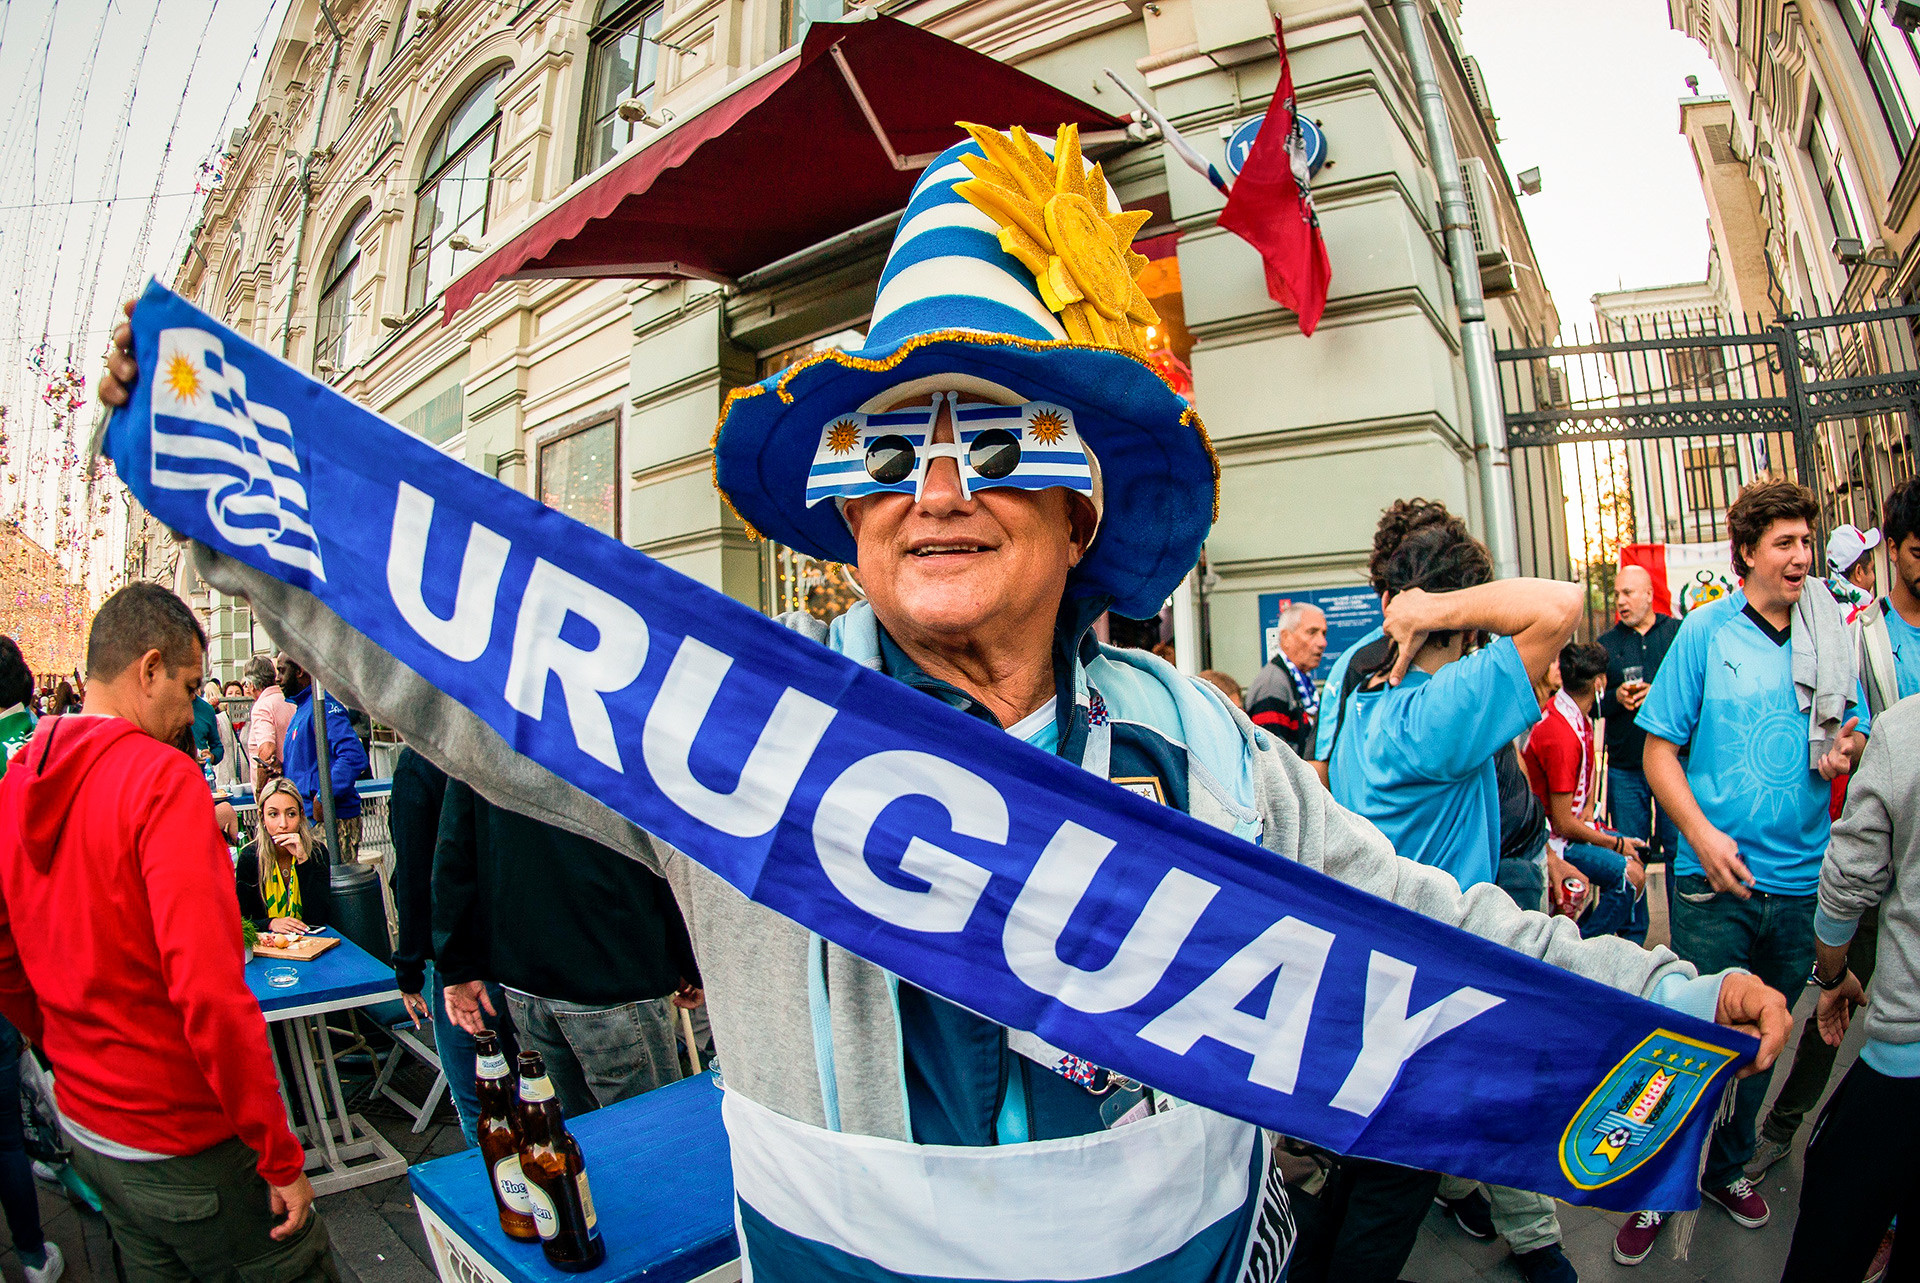 Uruguayans have been among the loudest supporters in Moscow so far. Their side is looking to break Russian hearts with the terrifying front pairing of Luis Suarez and Edinson Cavani.